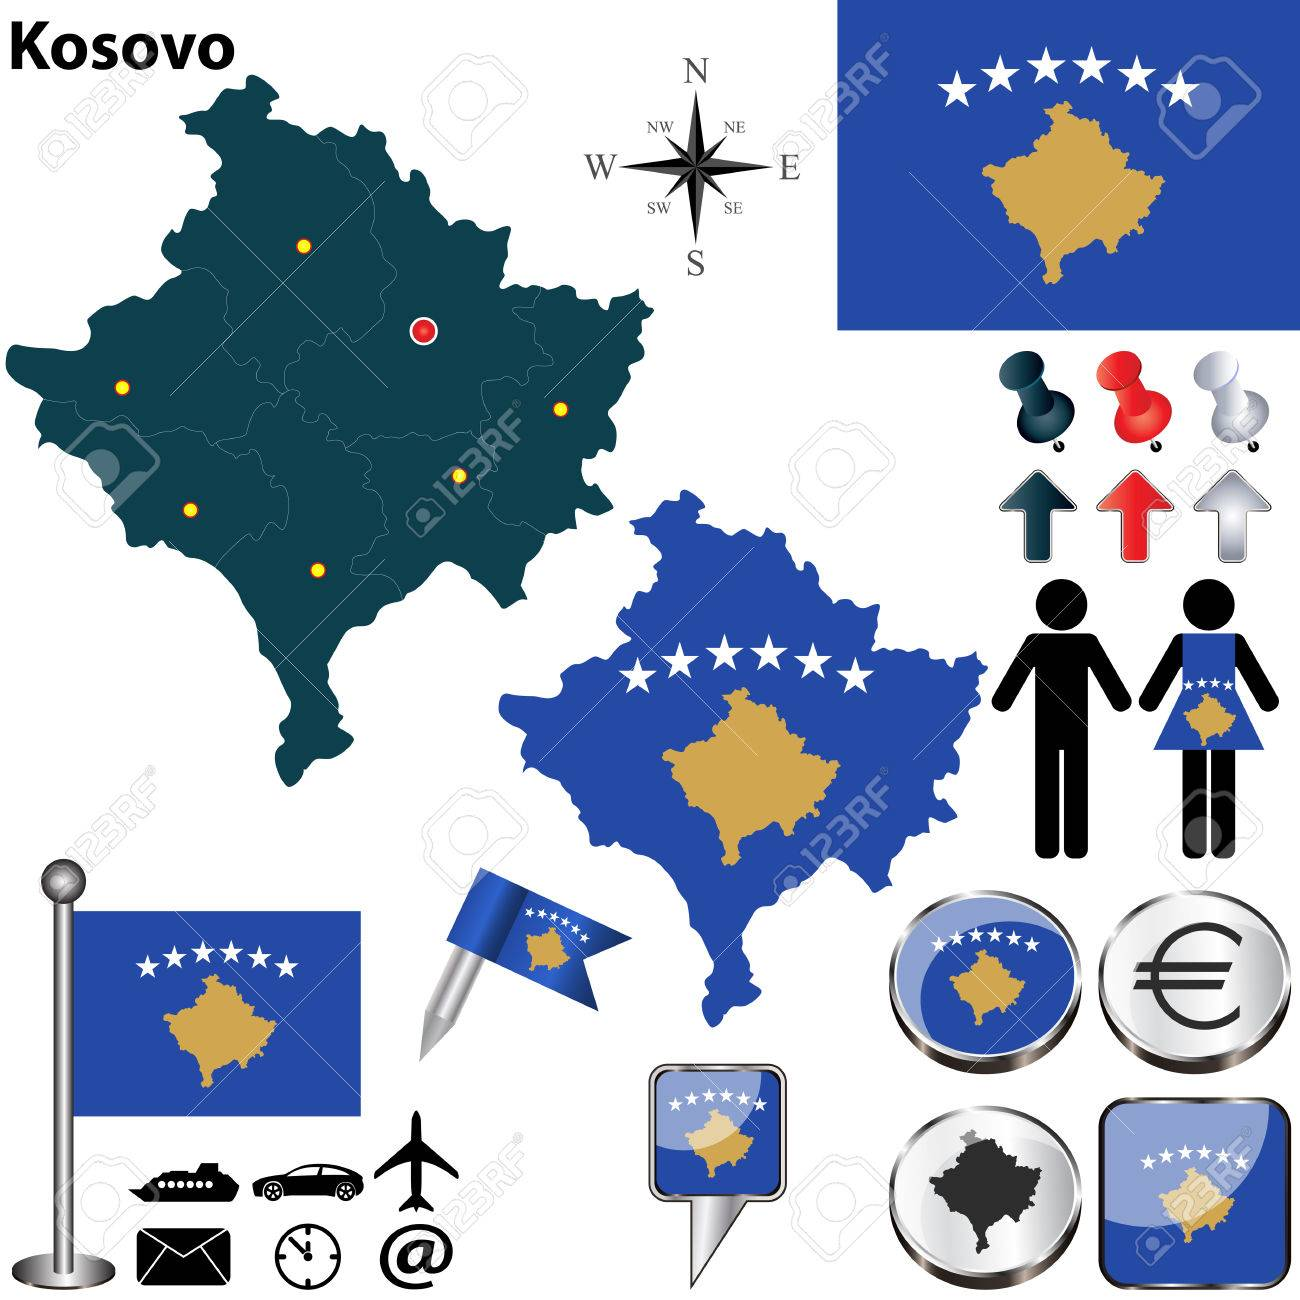 Map of kosovo with regions coat of arms and location on world map of kosovo with regions coat of arms and location on world map stock vector gumiabroncs Images